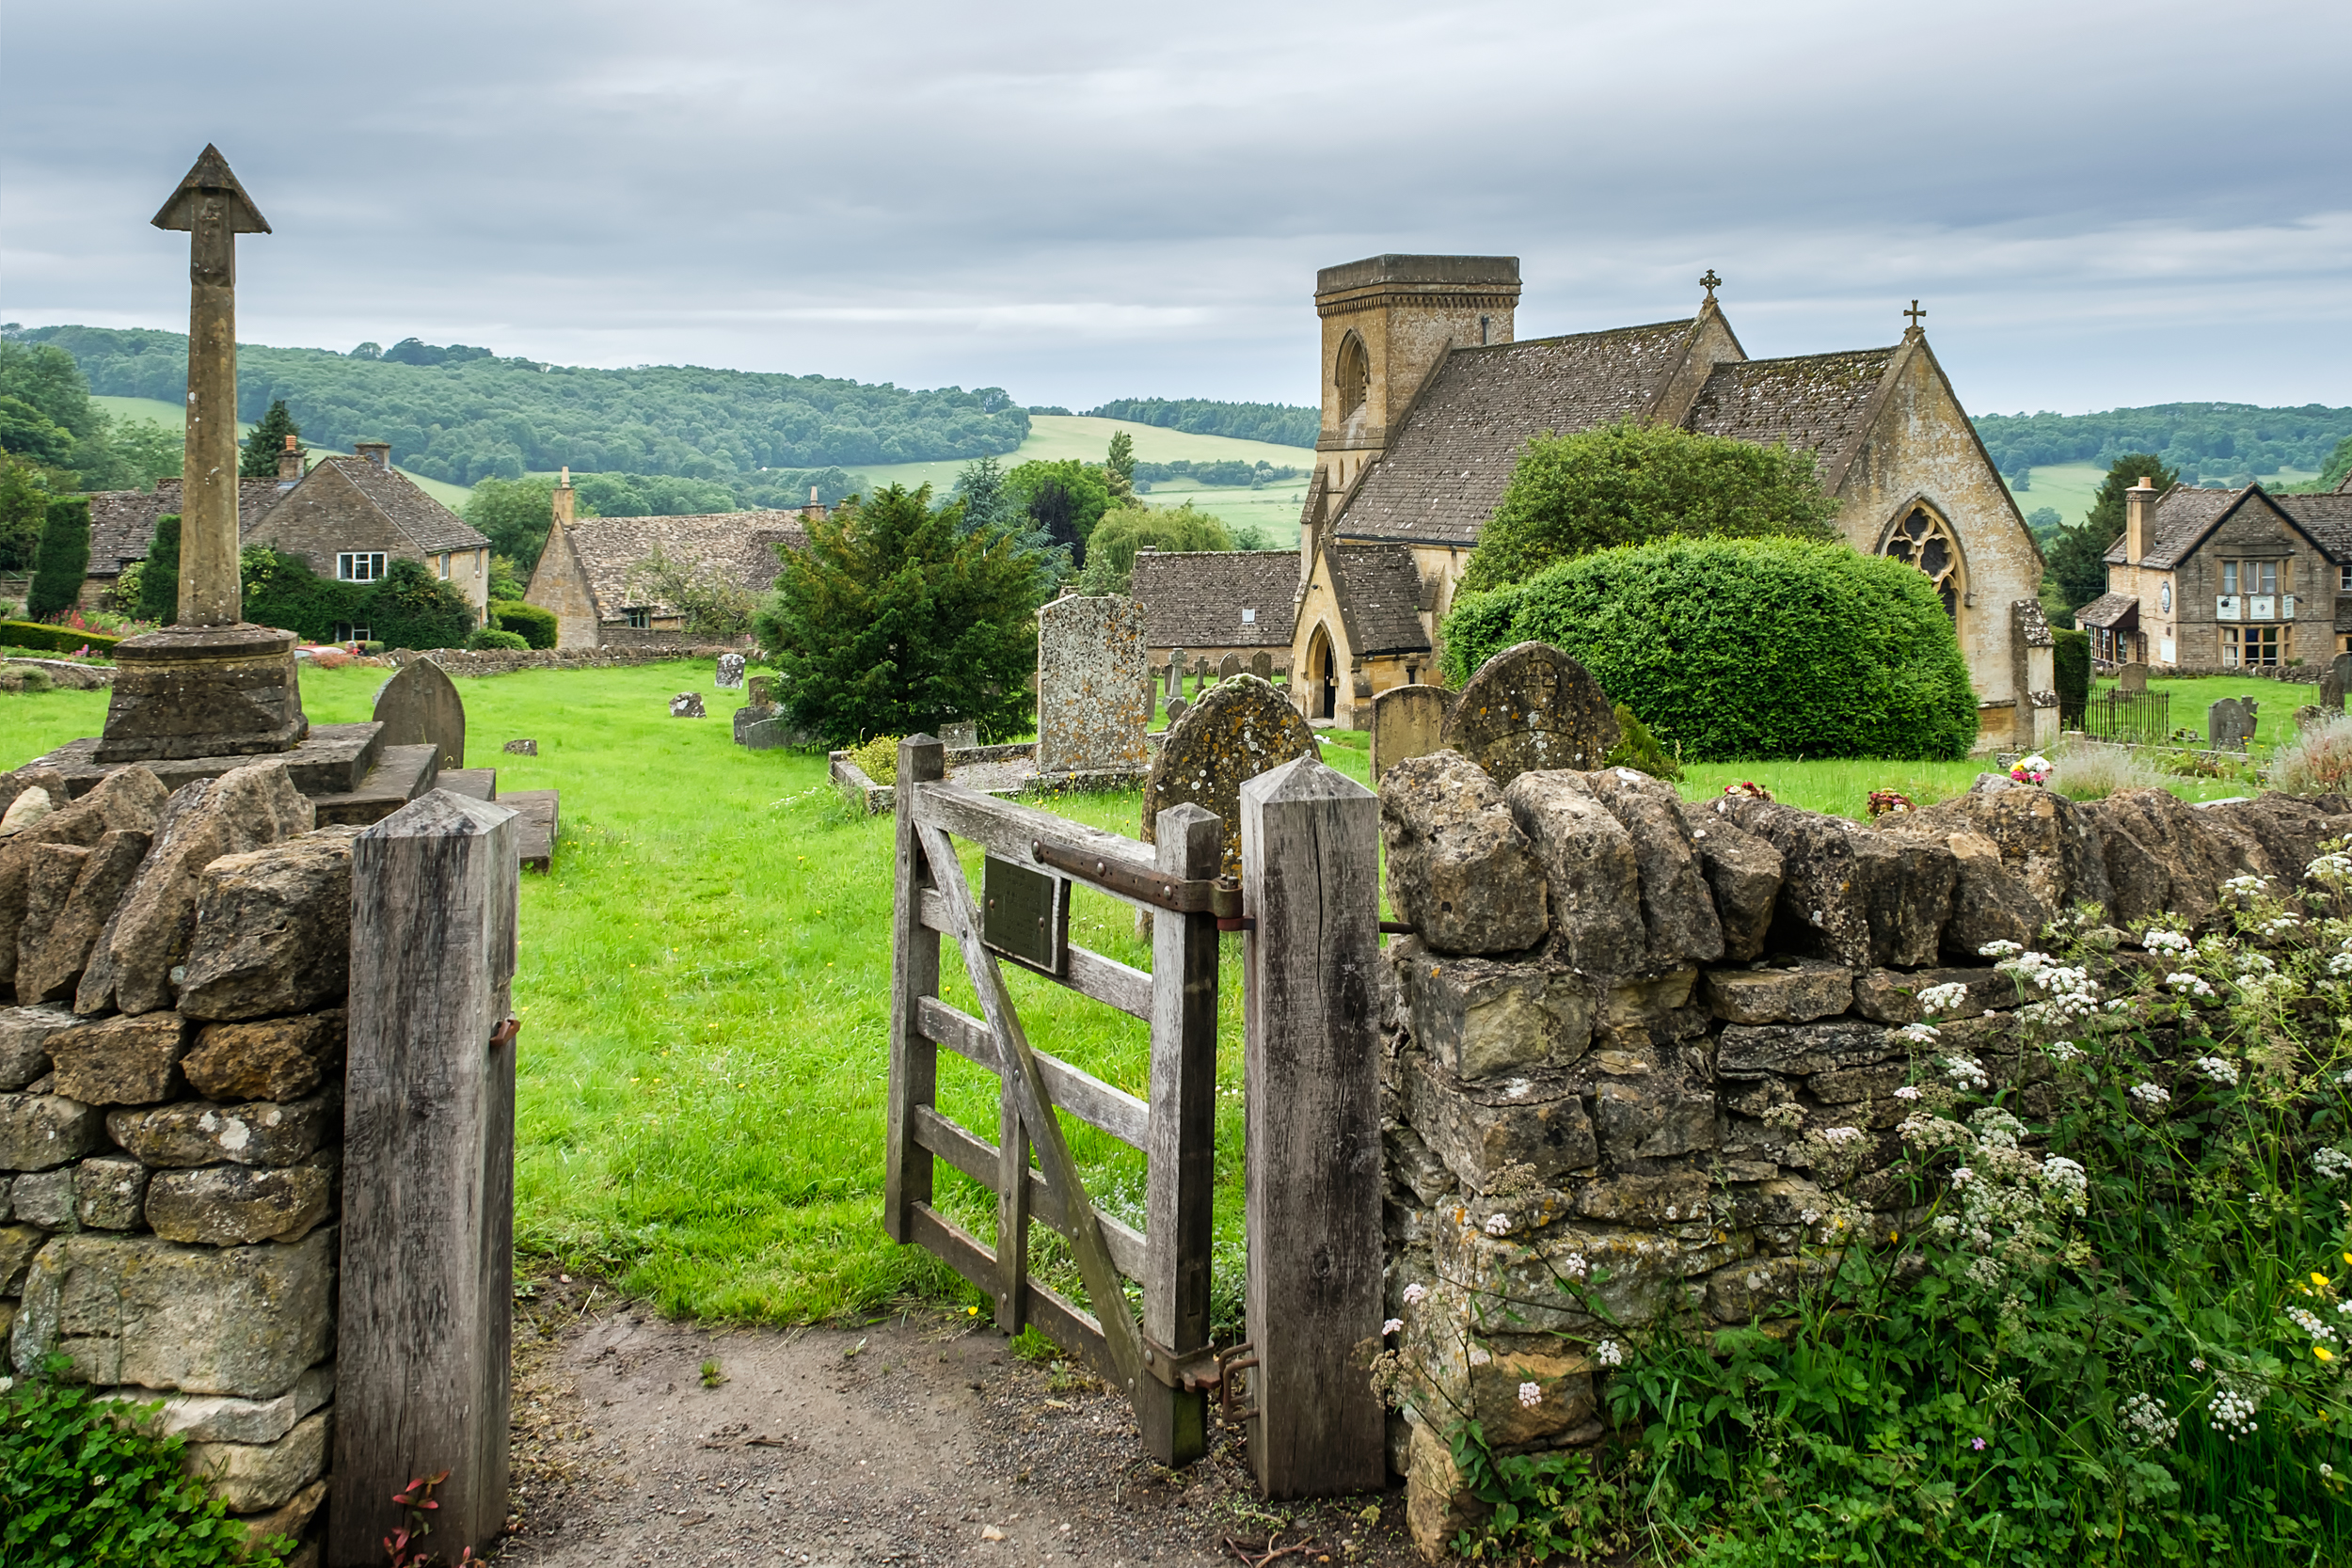 20190619_cotswolds-124-HDR-Edit.jpg